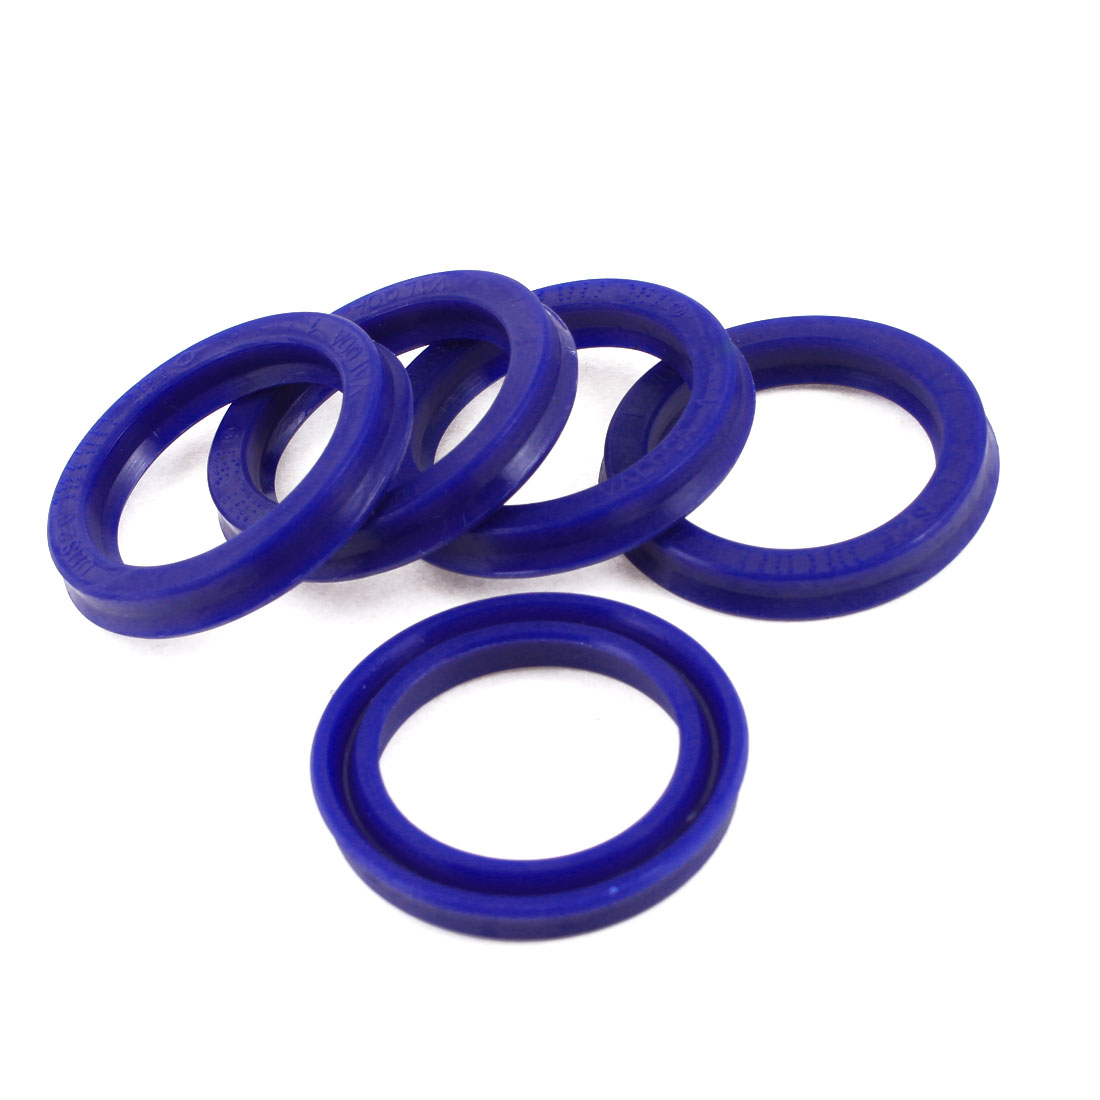 25mm x 35mm x 6mm Blue PU Double Lip Dust Resistant Oil Seal Ring 5 Pcs